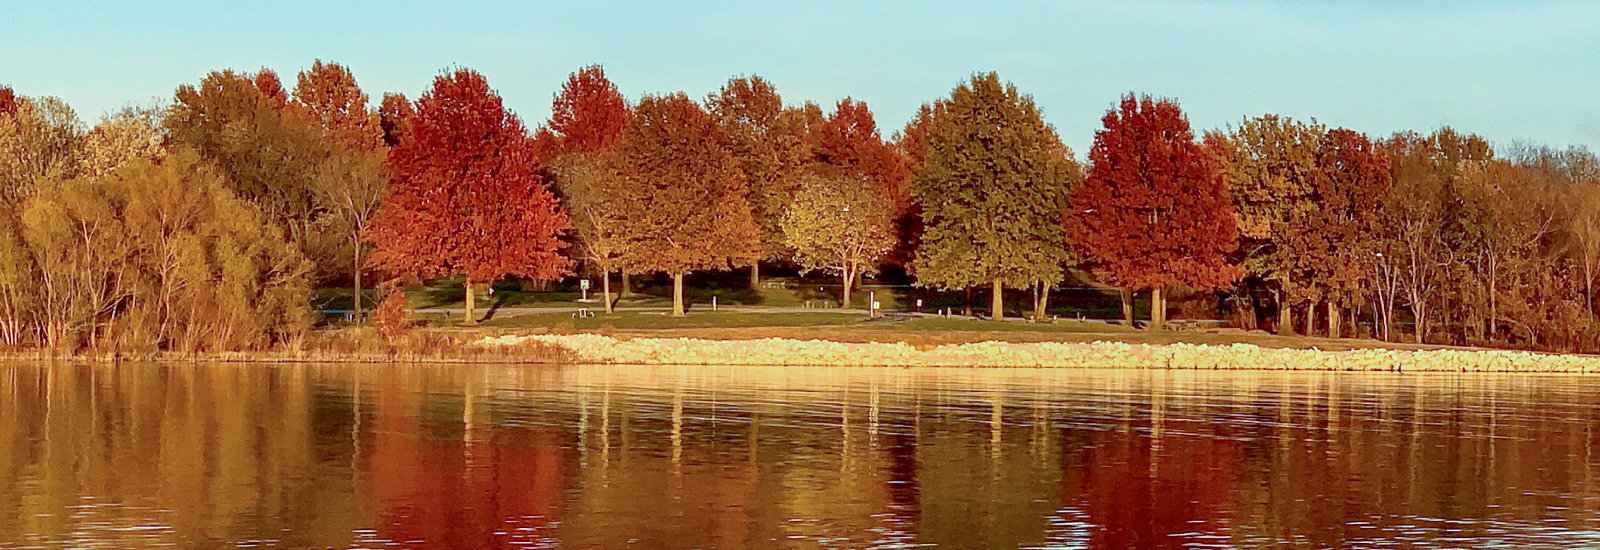 Fort Leonard Wood Weather in the Fall